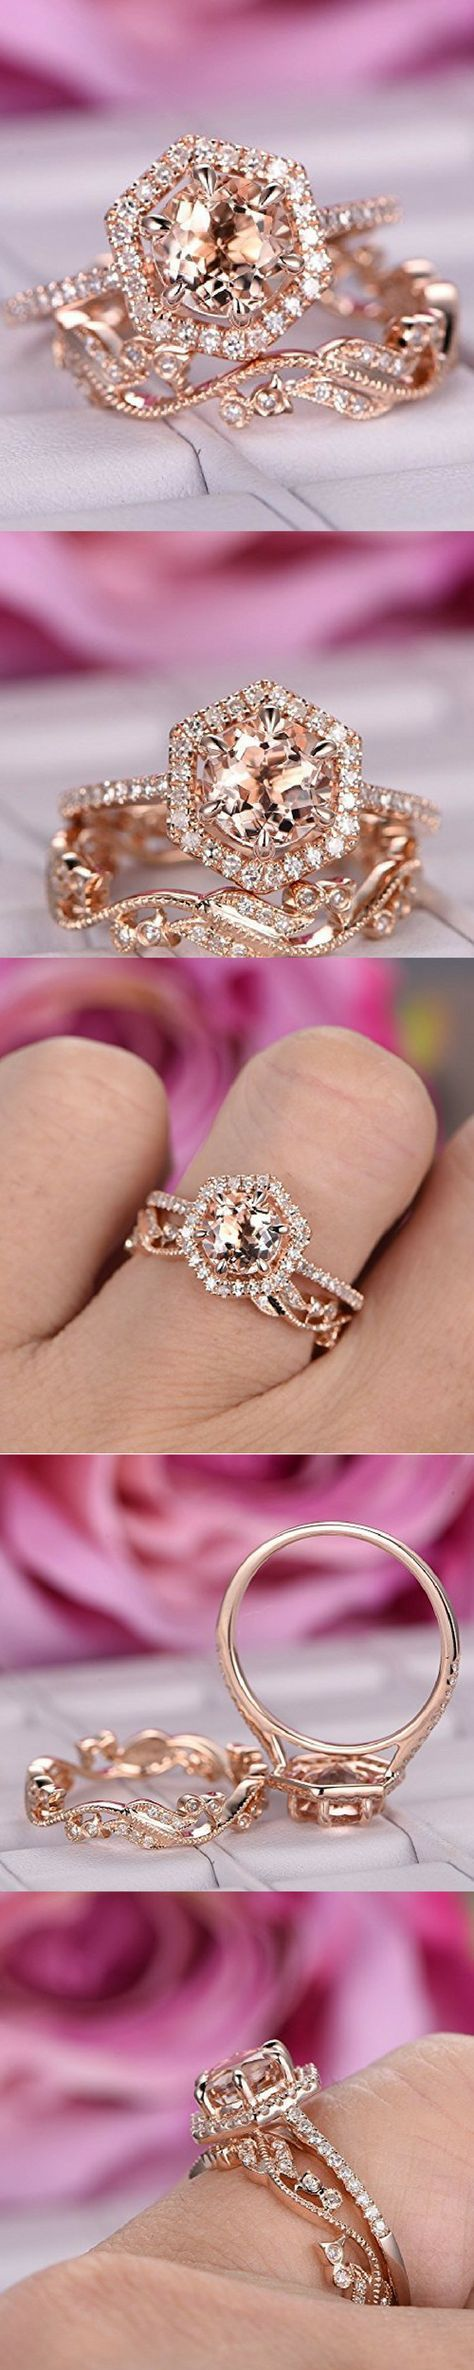 32 best Engagement ring ideas images on Pinterest | Wedding bands ...